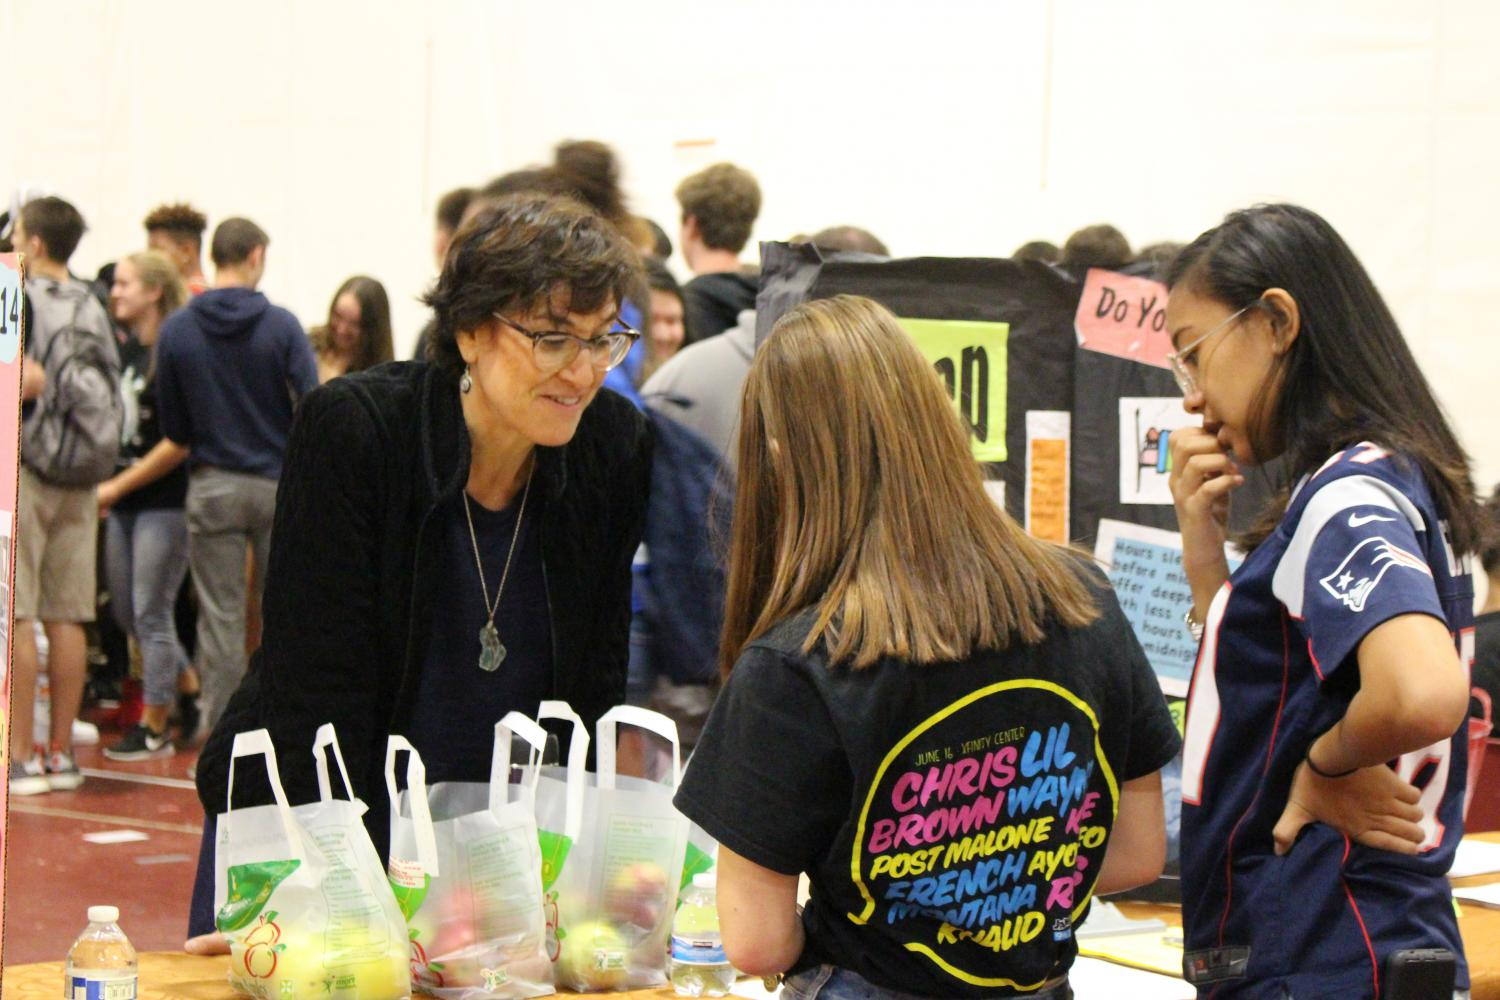 Nurse Practitioner Linda Gipstein, who works in the GHS Health Center, educates students on healthy decision making at the GHS health fair on September 29th